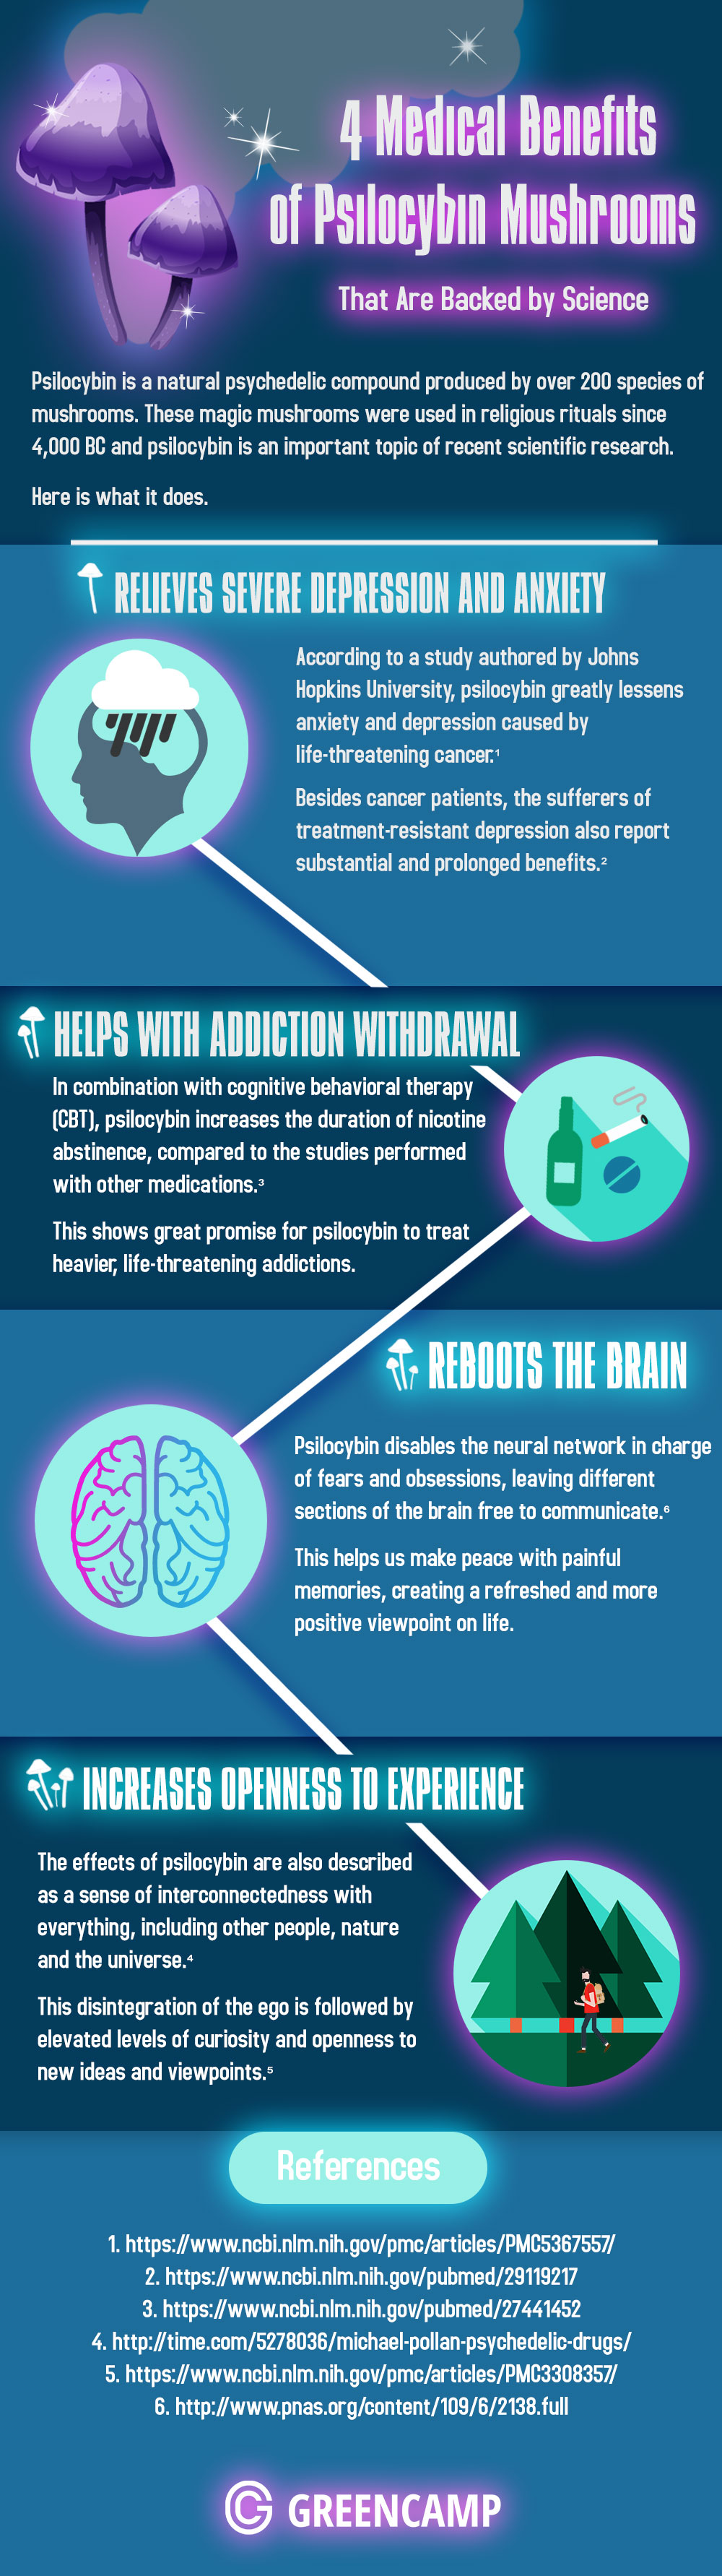 Why 'Magic' Mushrooms Make Much Medical Sense! - Infographic